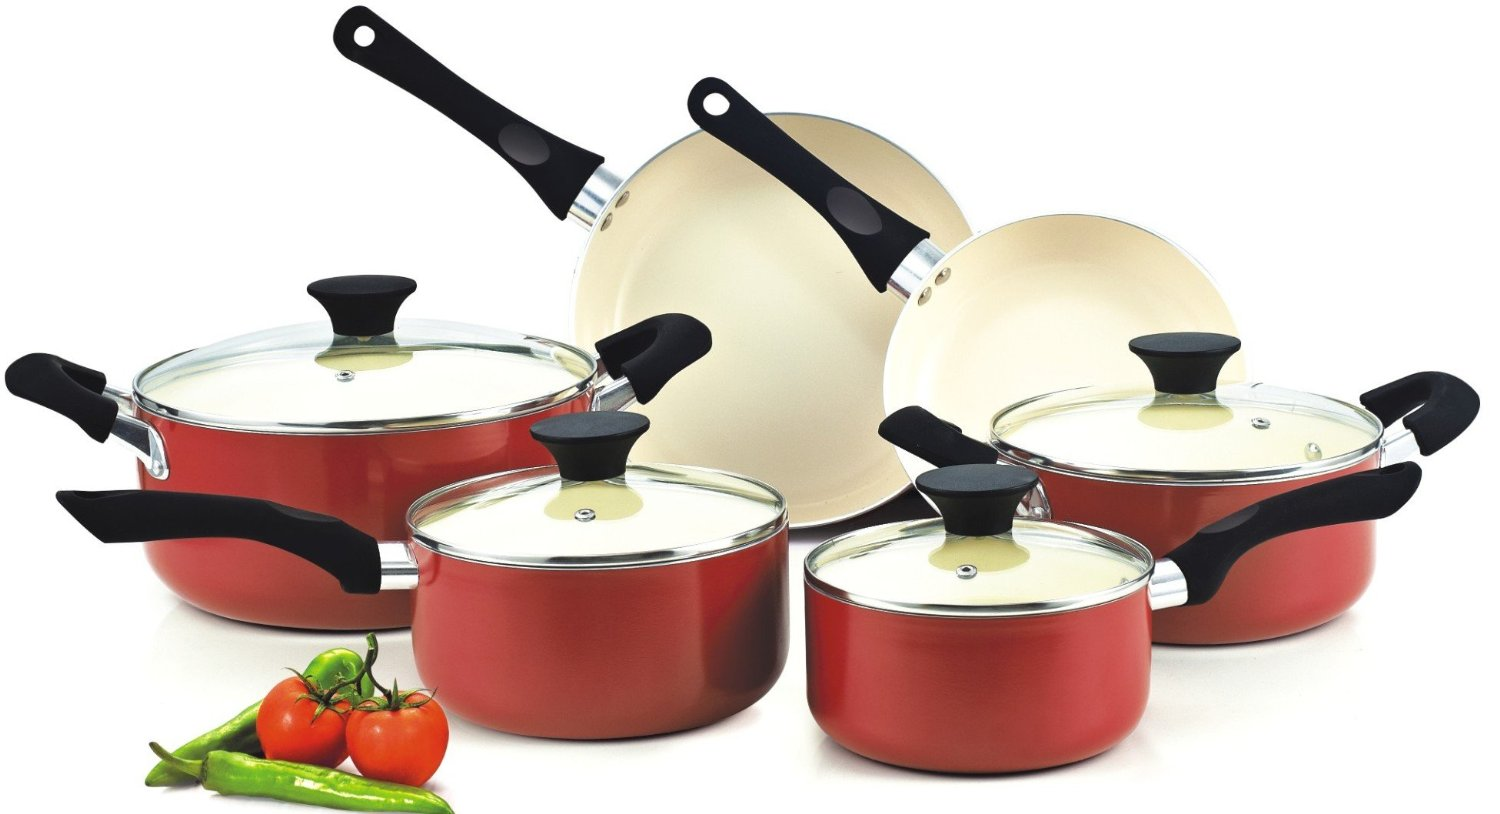 The Best Kitchen Cookware Set